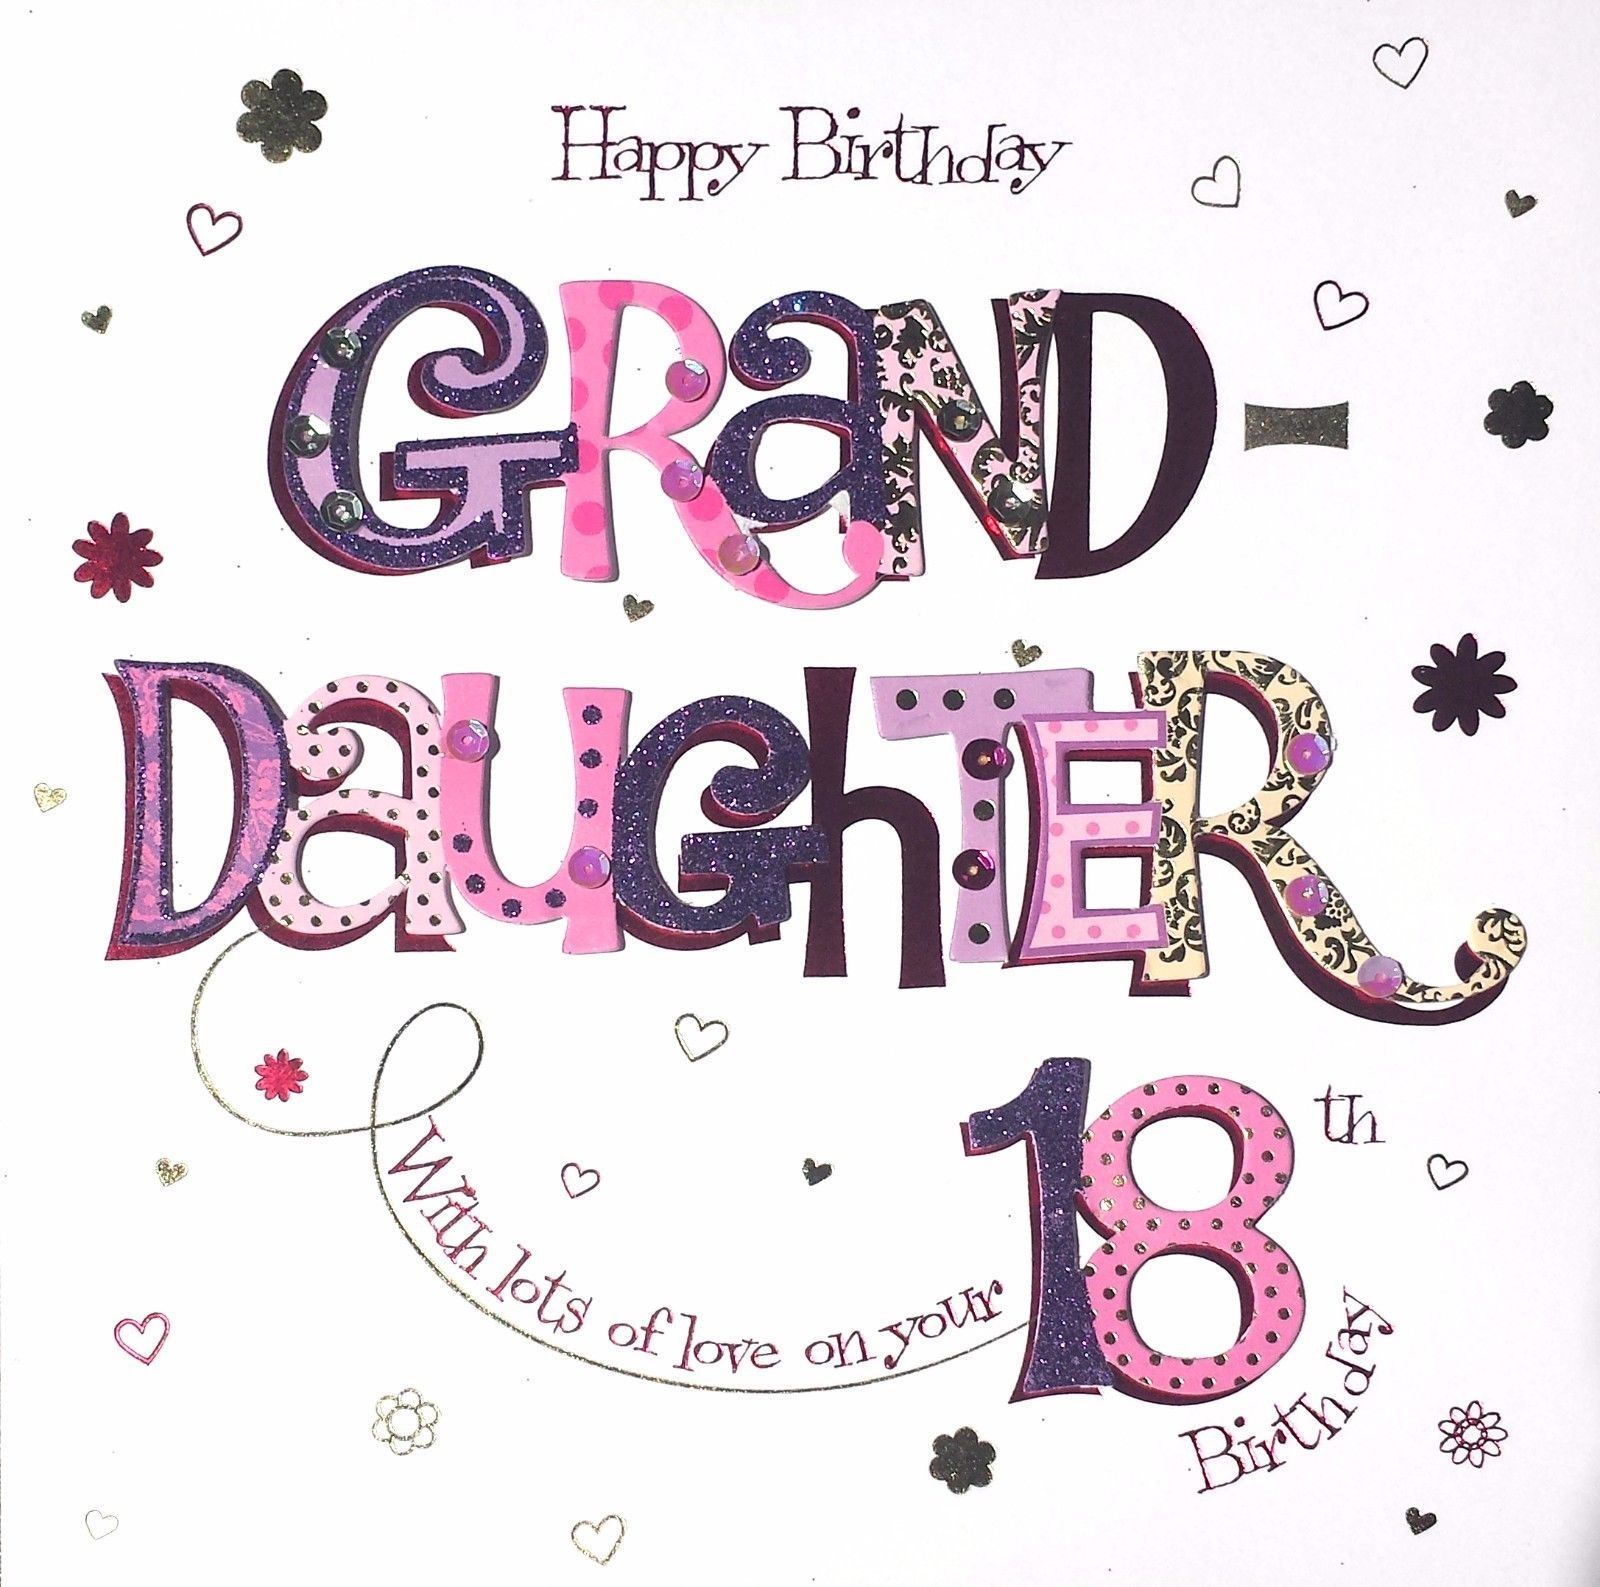 8 49 Gbp Happy Birthday Granddaughter On Your 18th Beautiful Large Hand Finished 18 Card Ebay H 18th Birthday Cards Birthday Wishes Happy Birthday Wishes